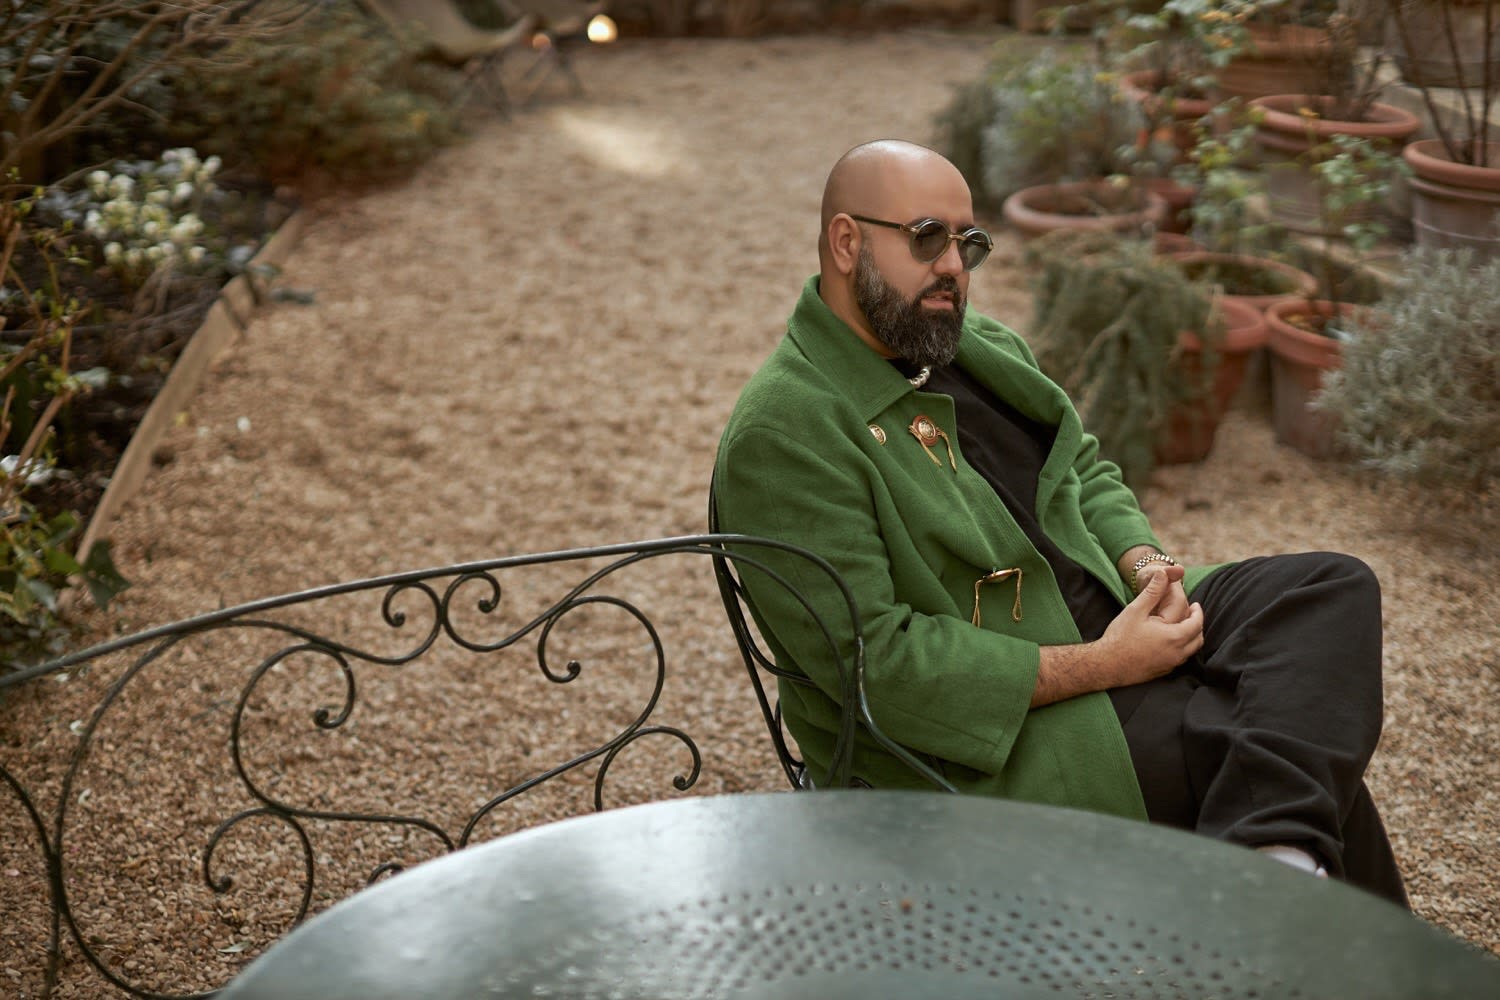 Charaf Tajer relaxing in the garden of the Casablanca showroom following their AW20 presentation